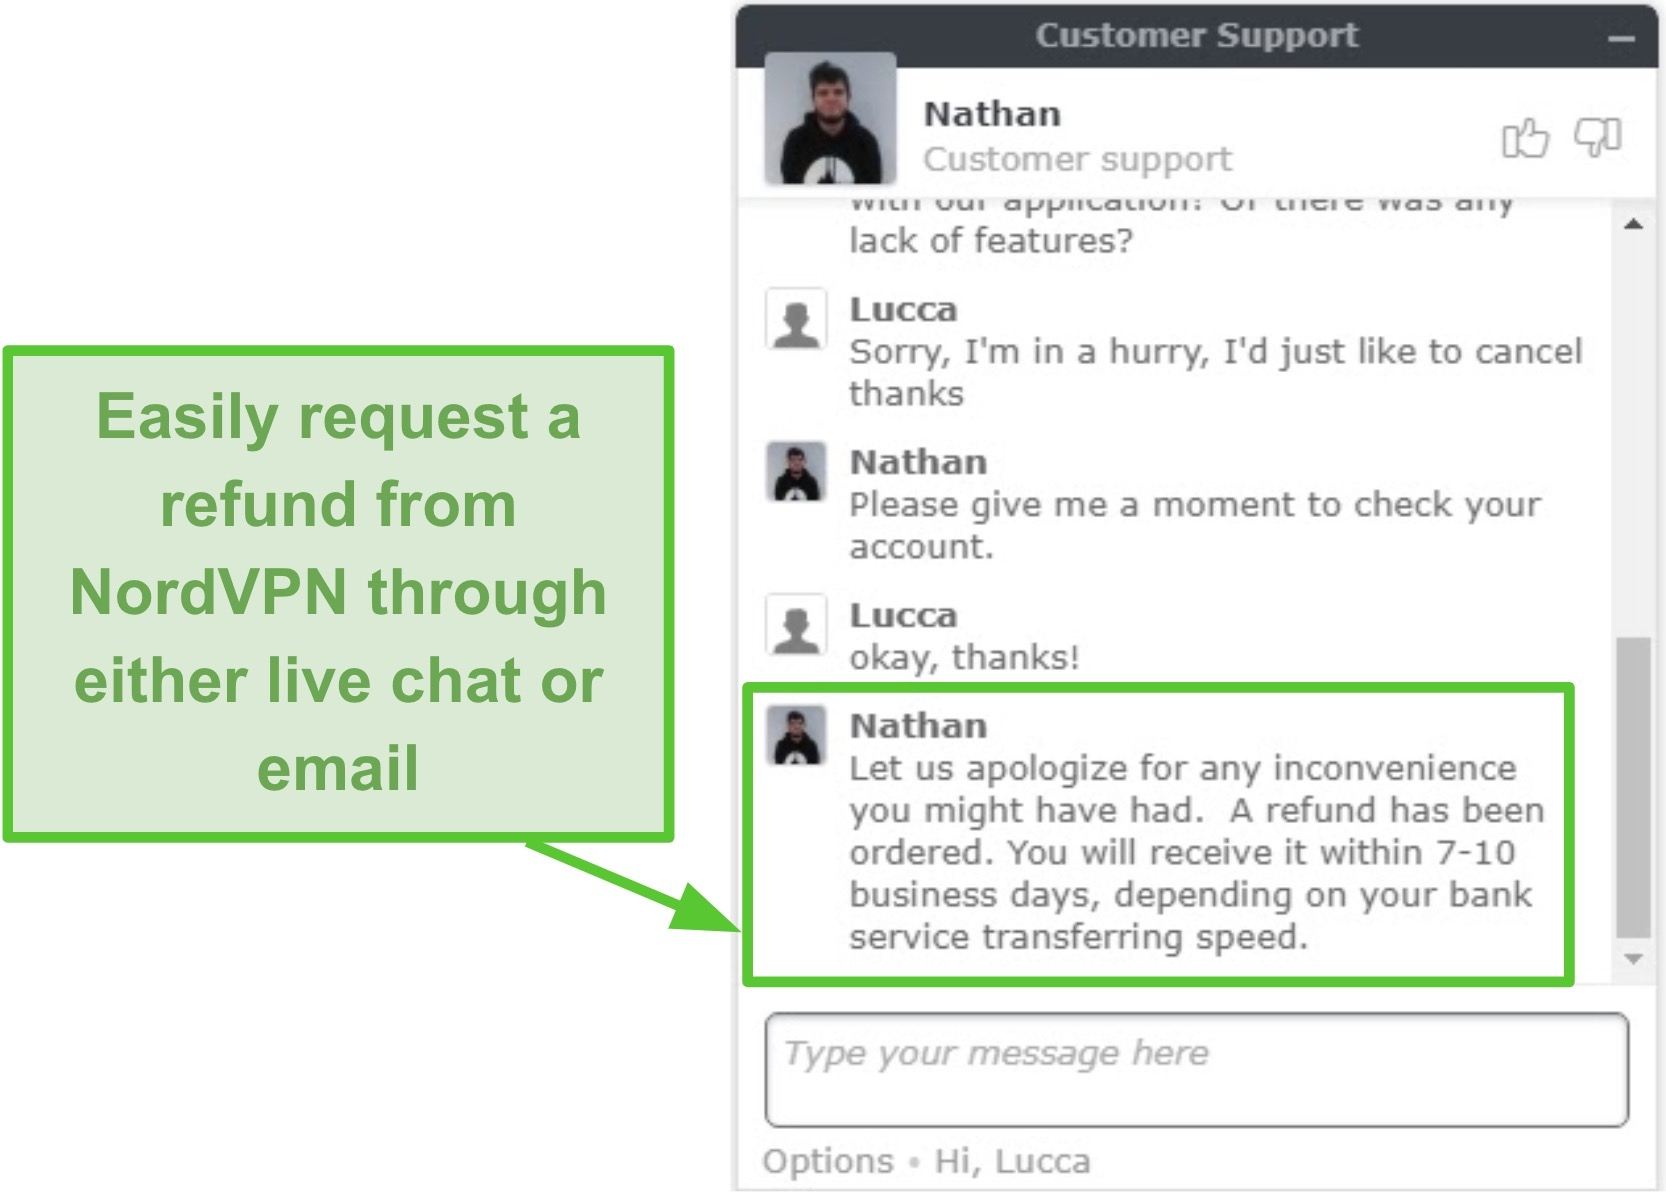 Screenshot of NordVPN refund being approved through live chat